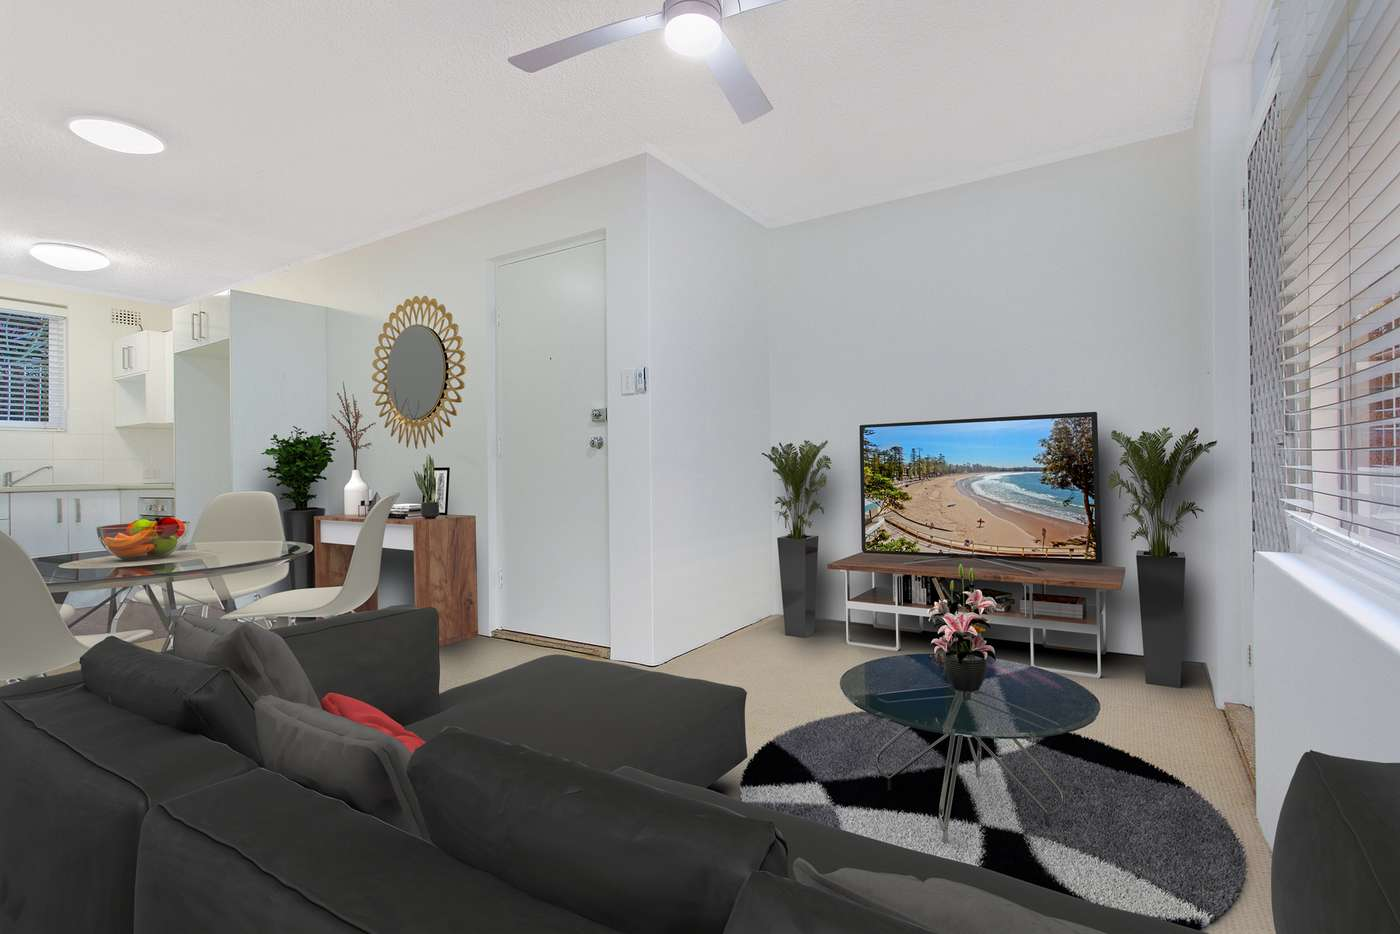 Main view of Homely apartment listing, 3/6 Campbell Parade, Manly Vale NSW 2093